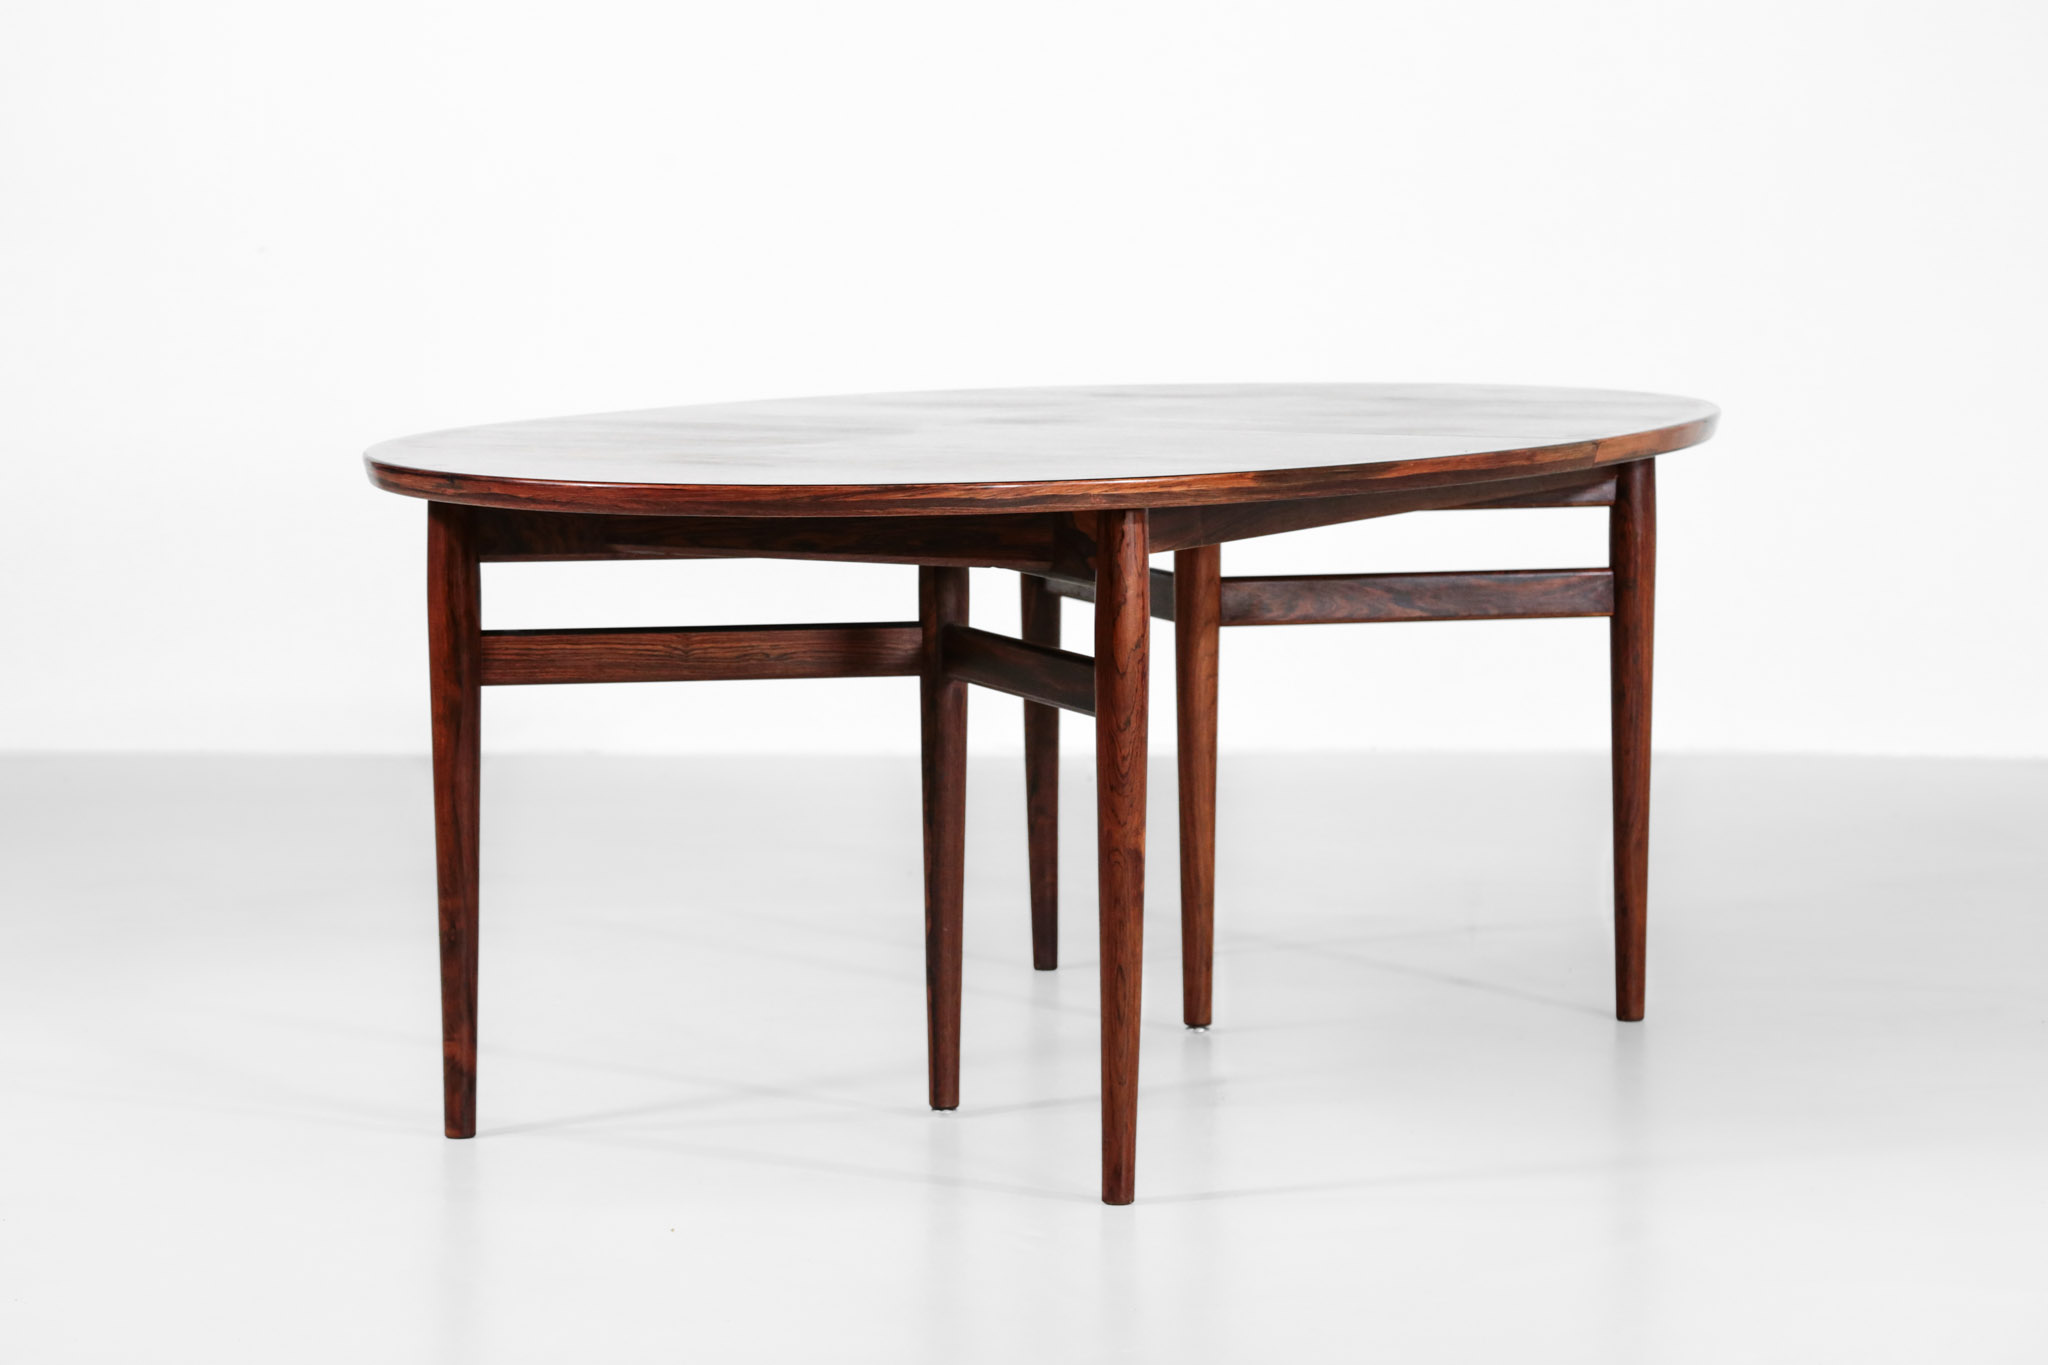 Grande Table Scandinave Large Arne Vodder Dining Table Model 212 In Rosewood Denmark